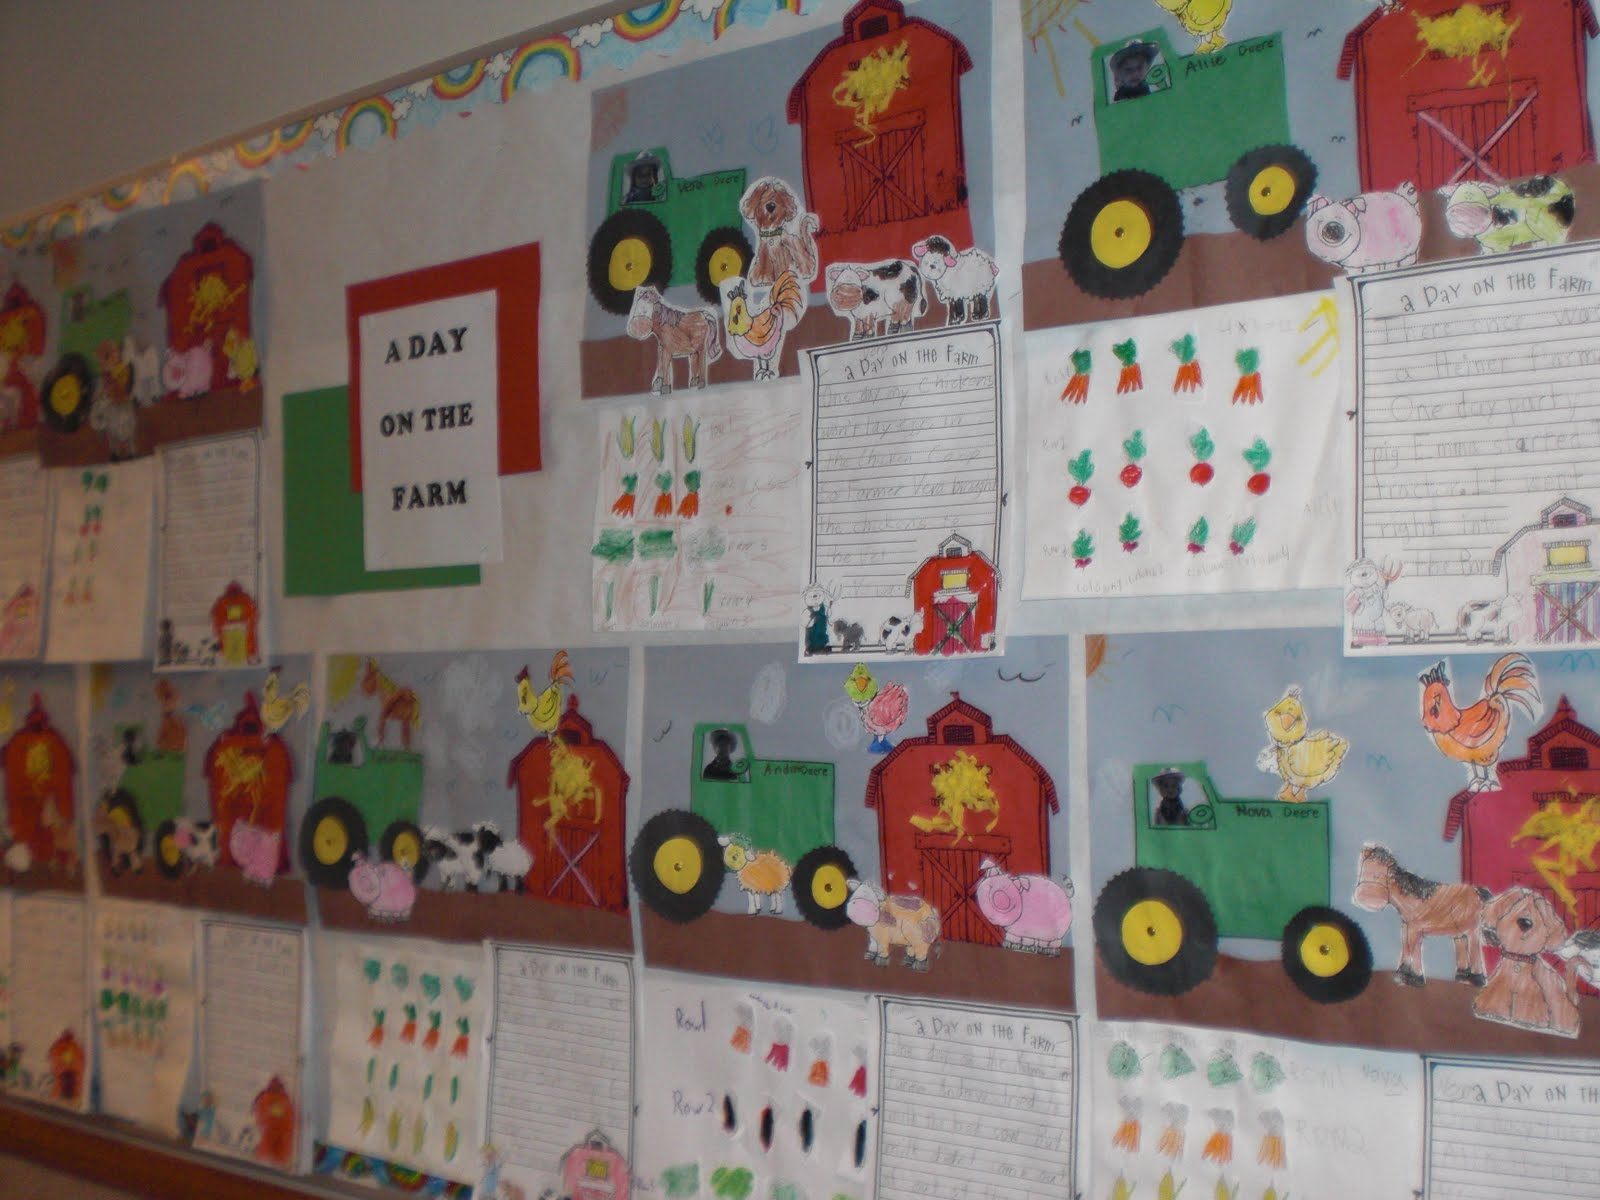 Patties Classroom Farm Stories Plants Seeds Gardening